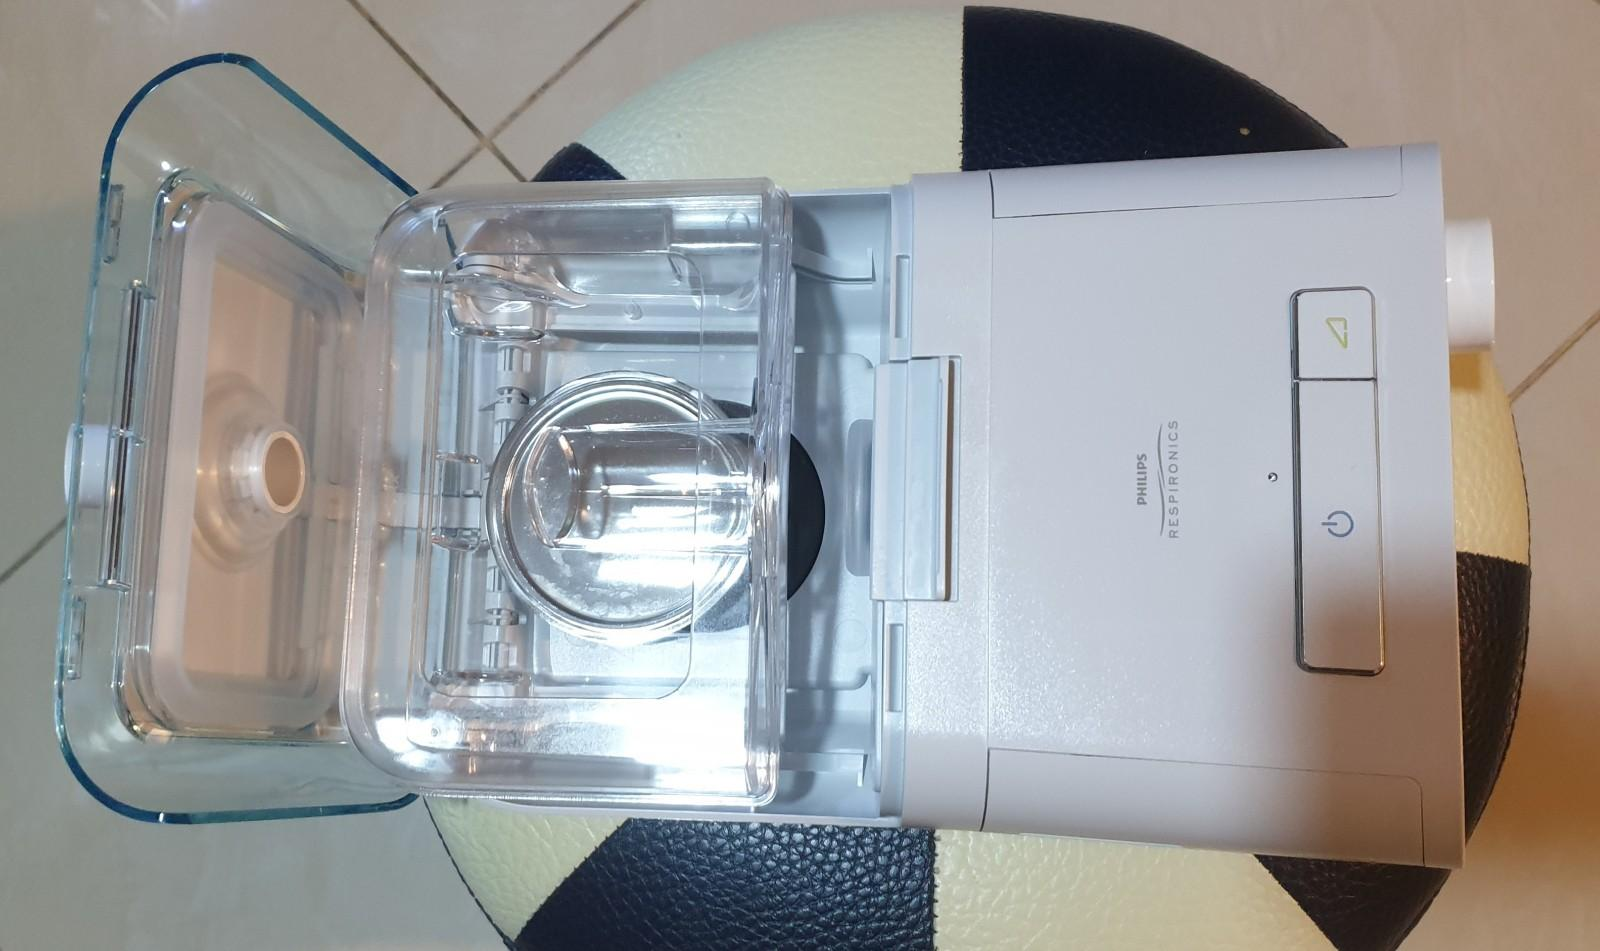 Not used - Philips CPAP Respironics machine for sa